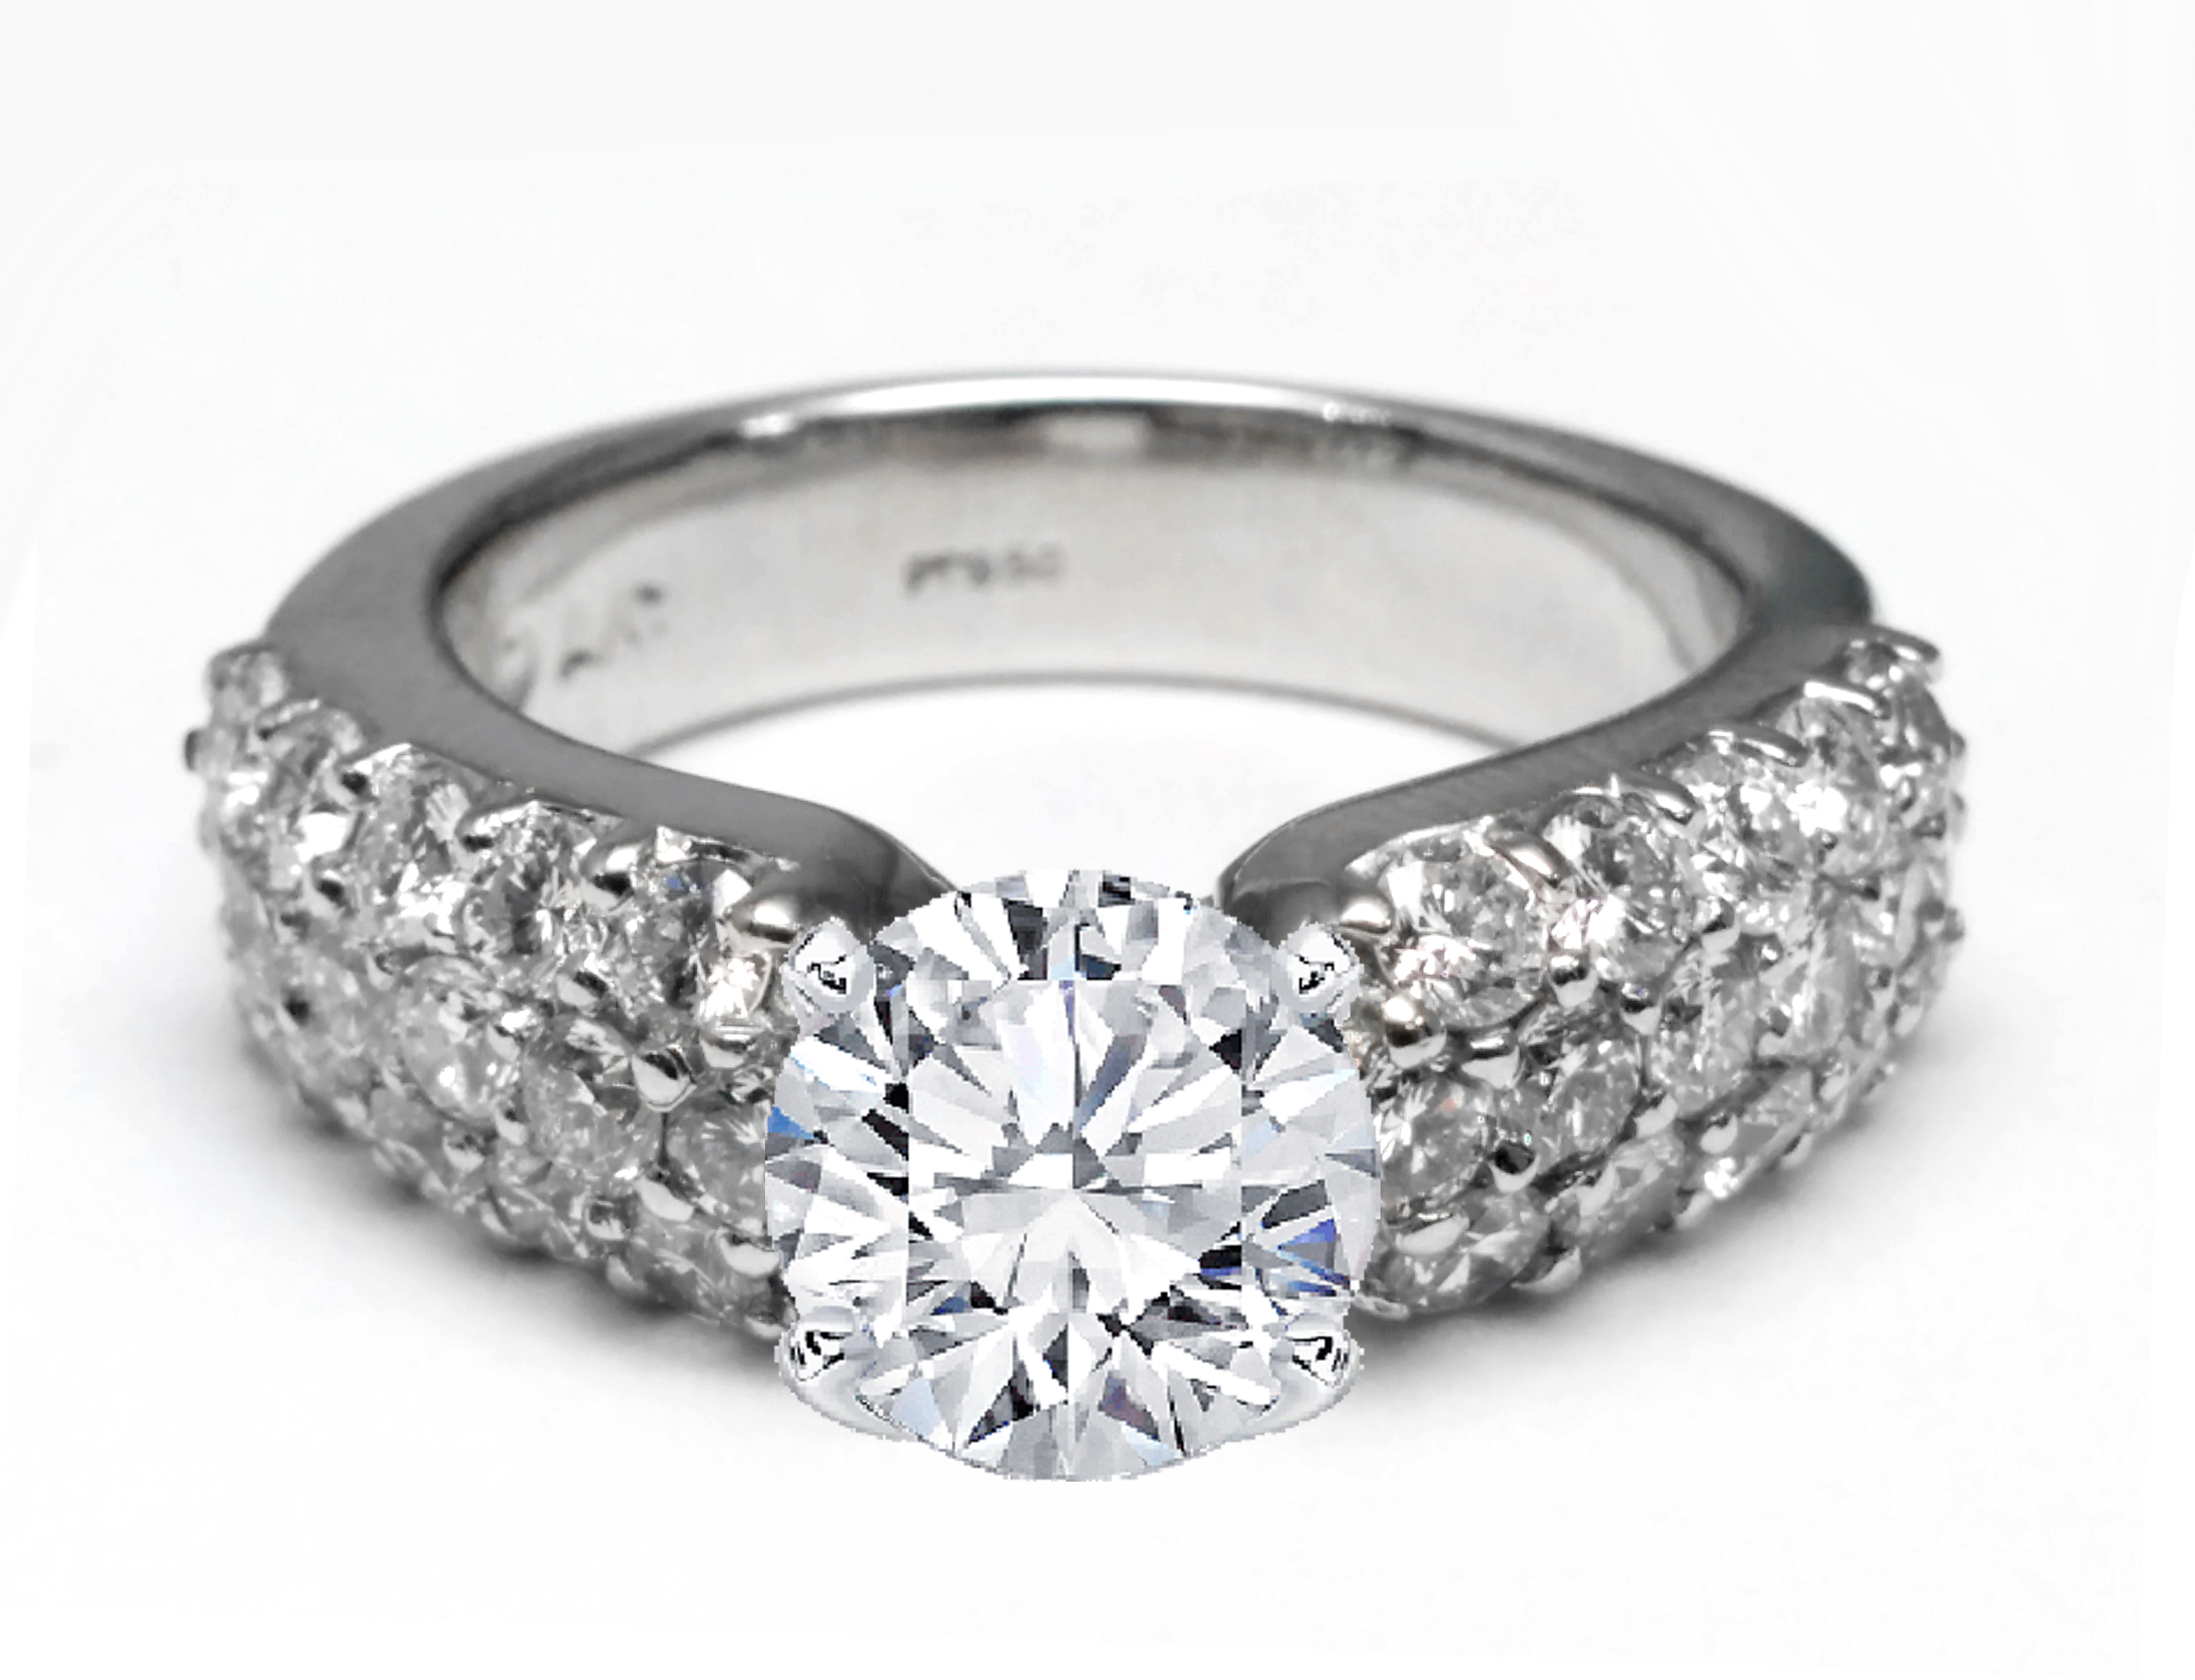 three engagement diamond band row platinum tcw ring micro mdc in engagementringsre pave diamonds nyc cfm rings from bands